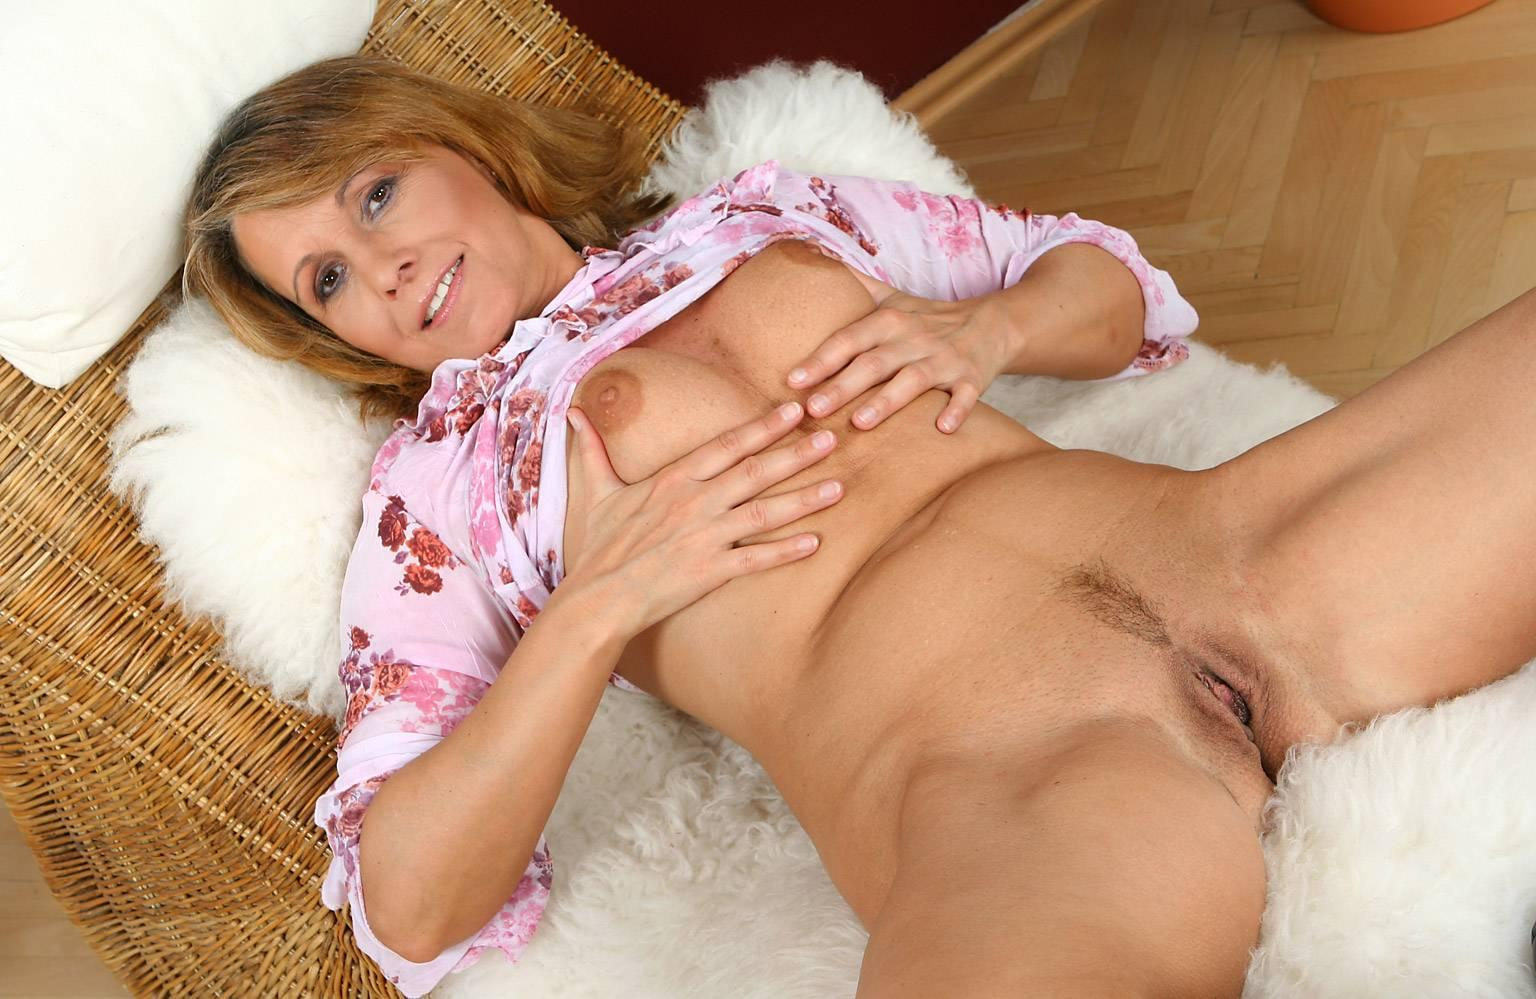 Mature Hotties: http://galleries1.adult-empire.com/6471/405341/2666/